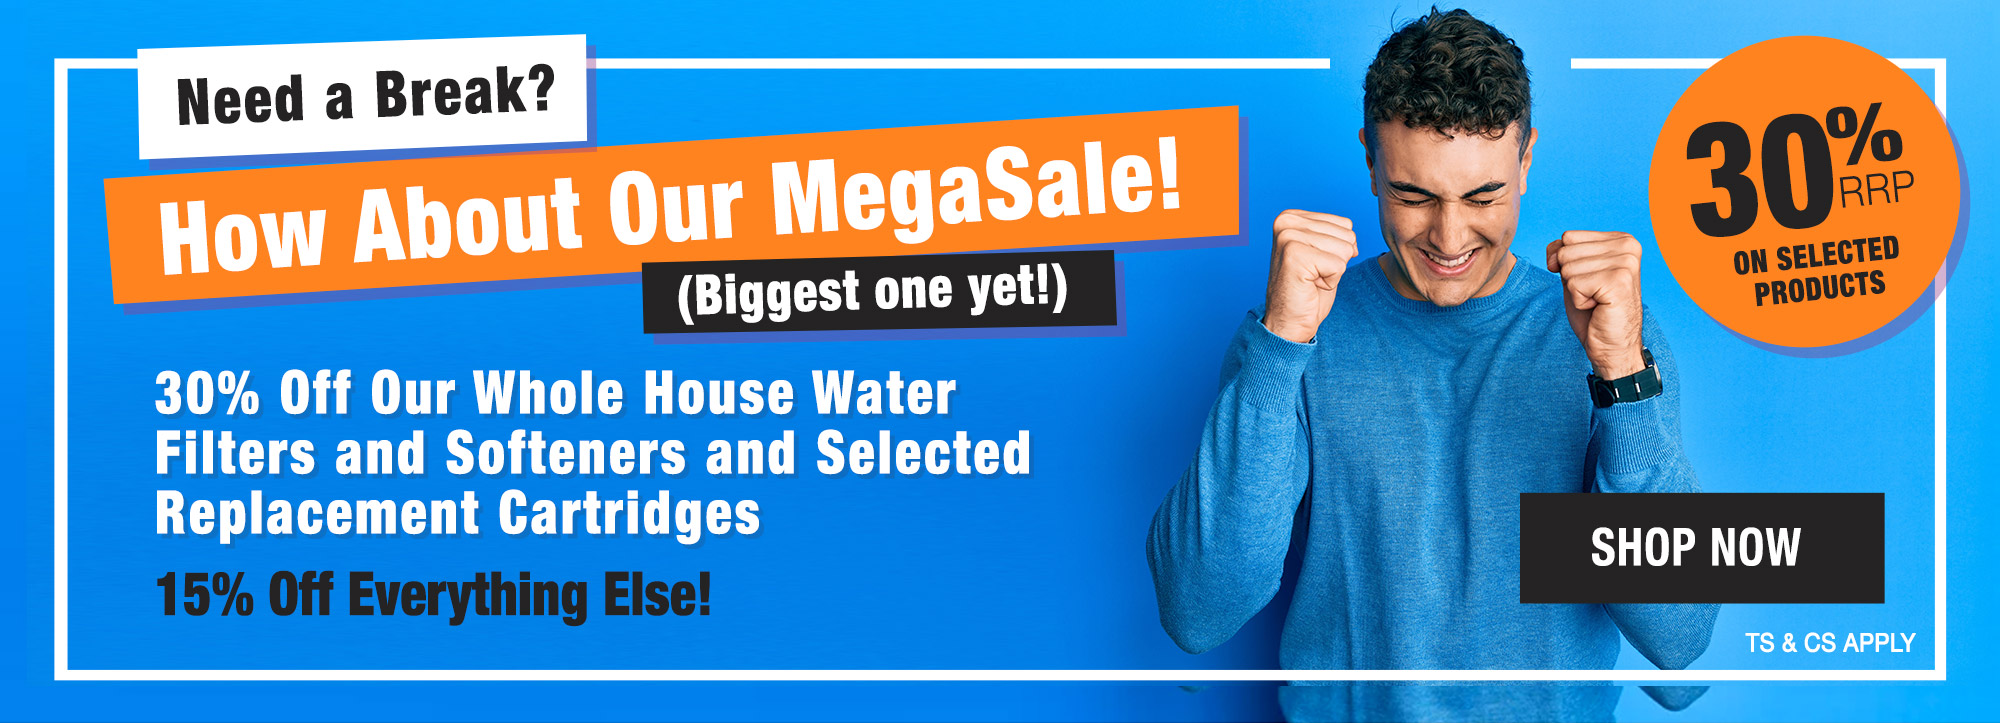 30% Off Our Whole House Water Filters and Selected Replacement Cartridges